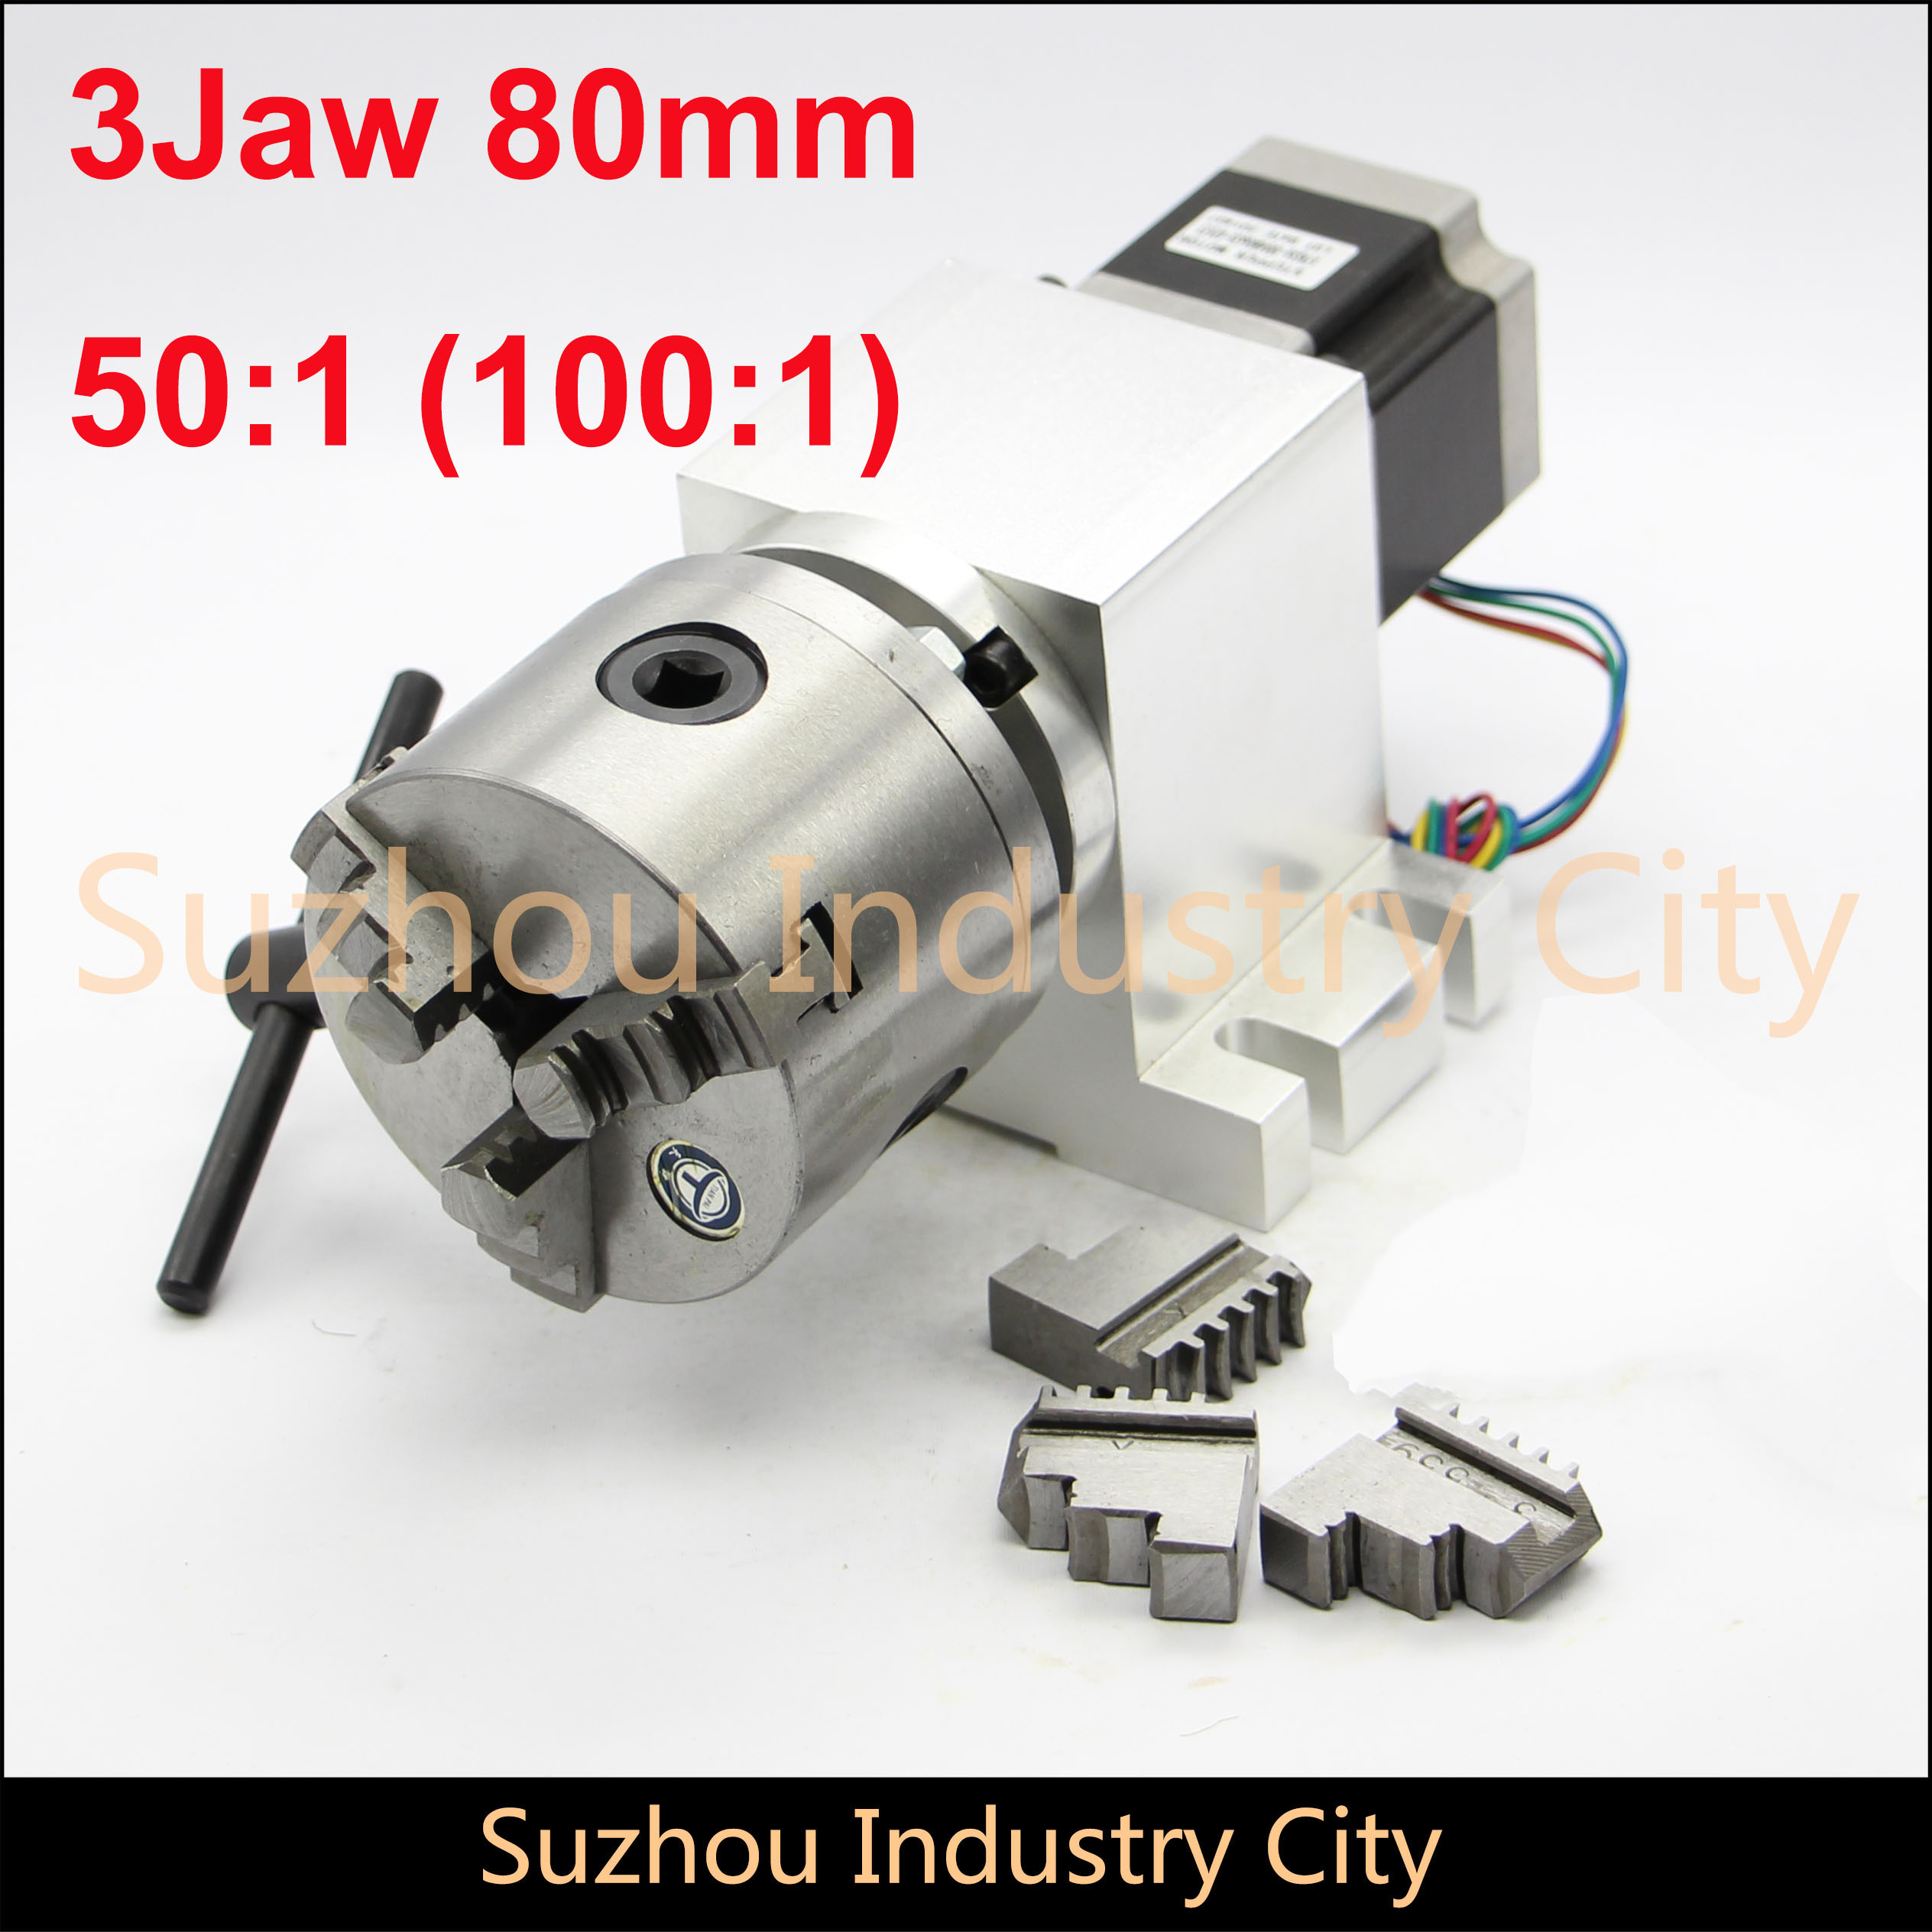 80mm CNC 4th Axis  CNC Dividing Head/Rotation Axis/A Axis Kit Nema23 Gapless Harmonic Gearbox For CNC Woodworking Machine